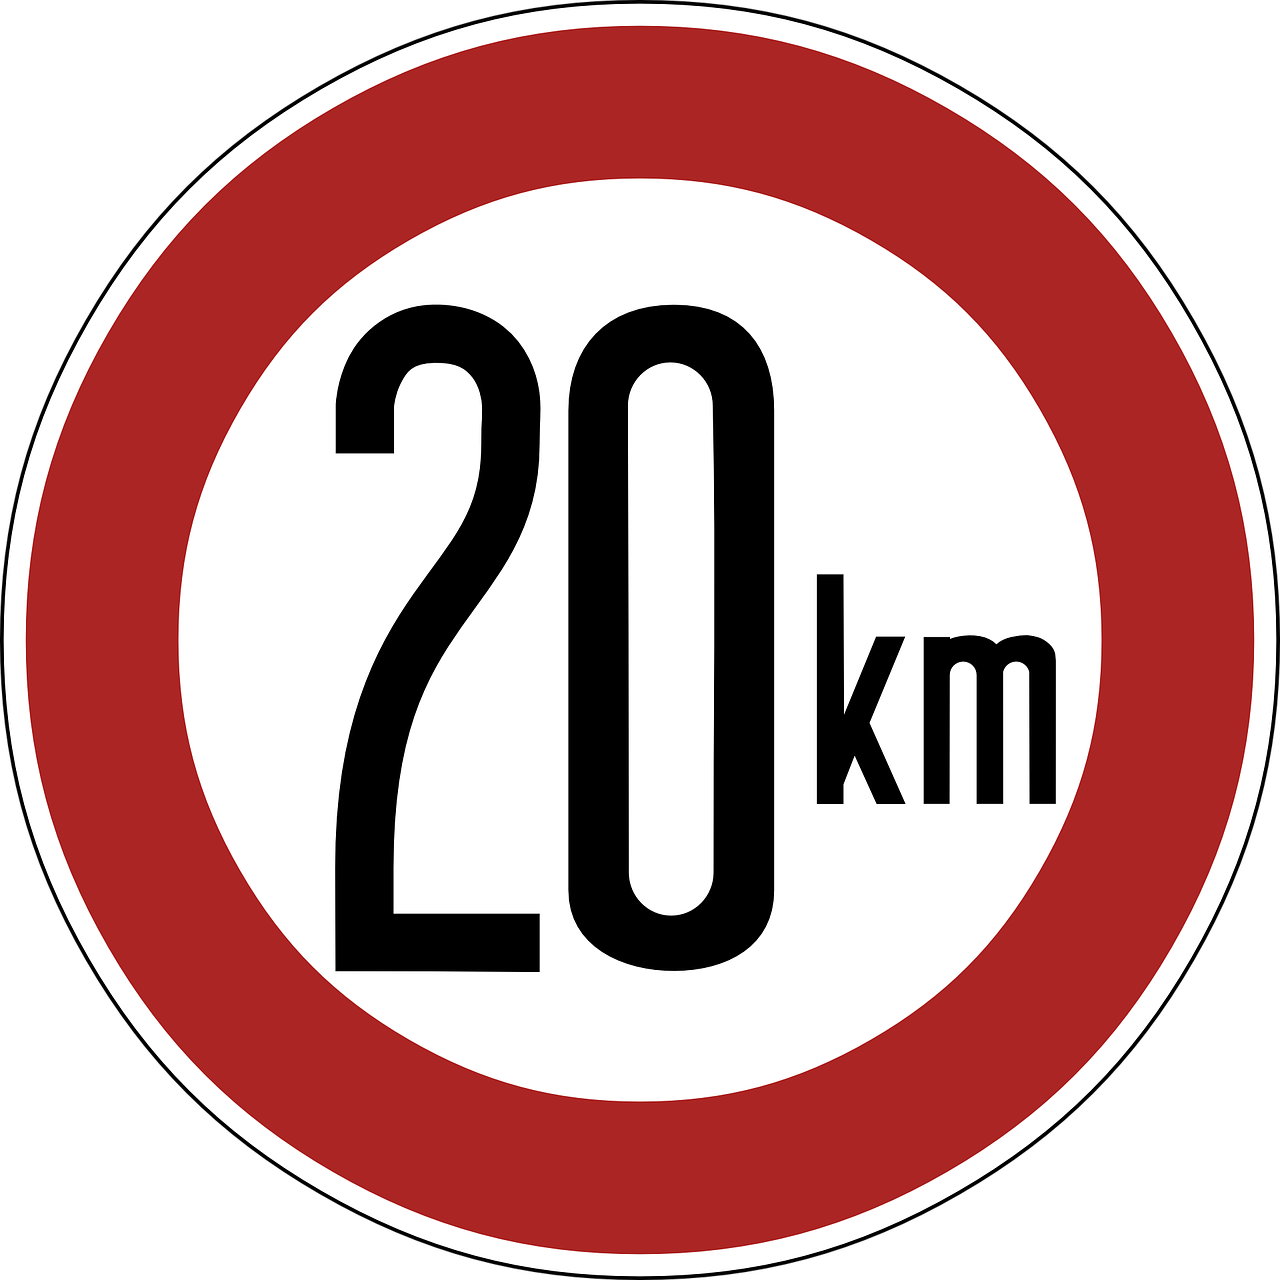 speed limit sign 20 km free photo